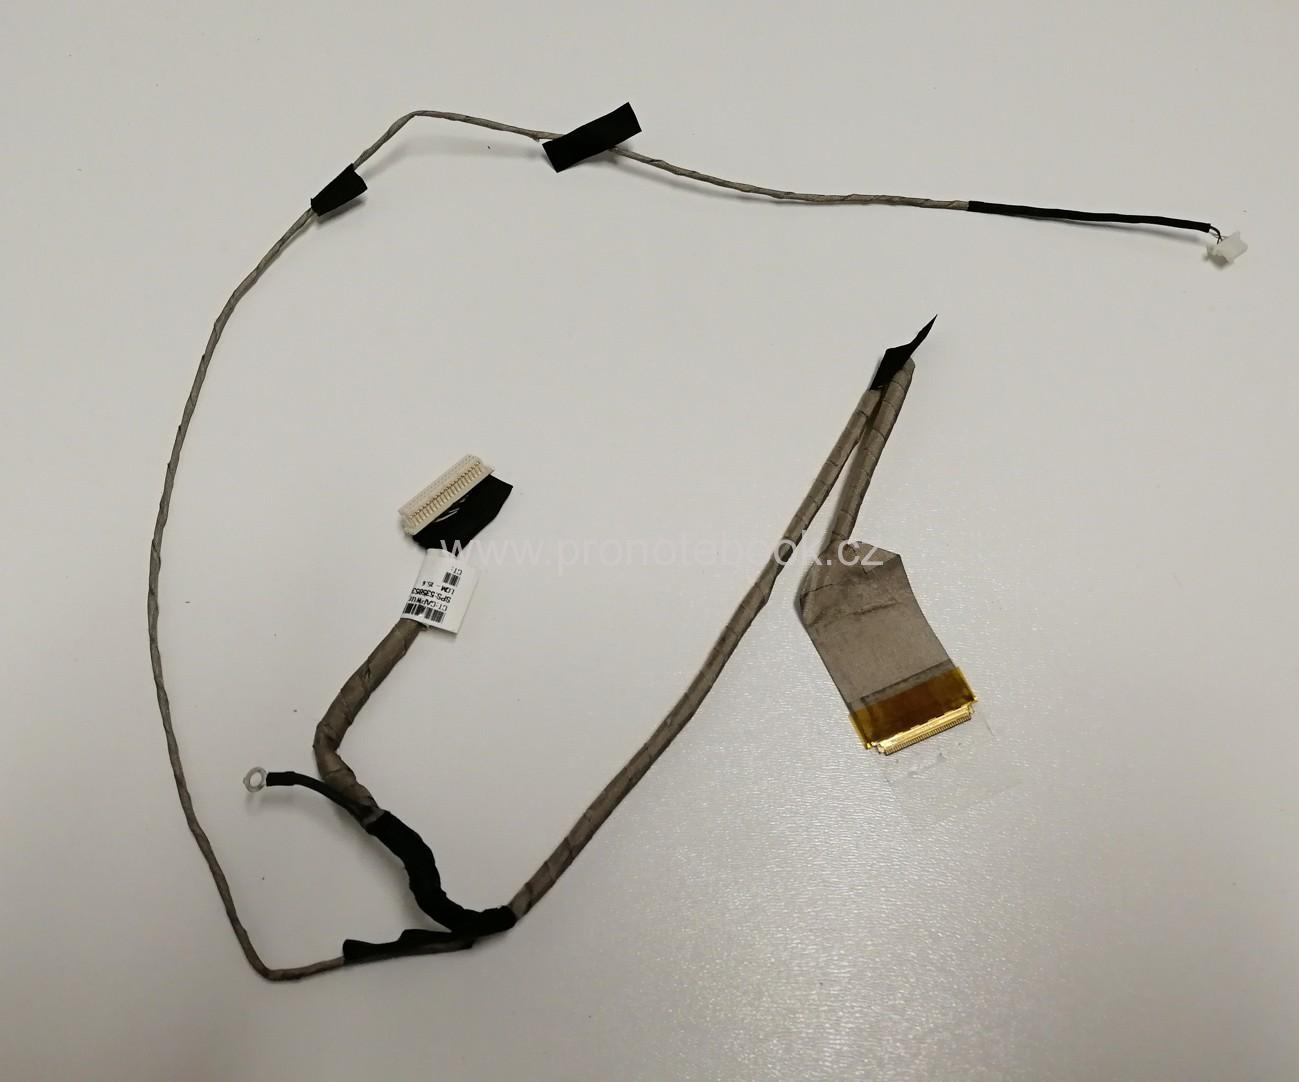 HP ProBook 4510s video cable (1366 x 768) with webcam cable 535853-001 SKLADEM